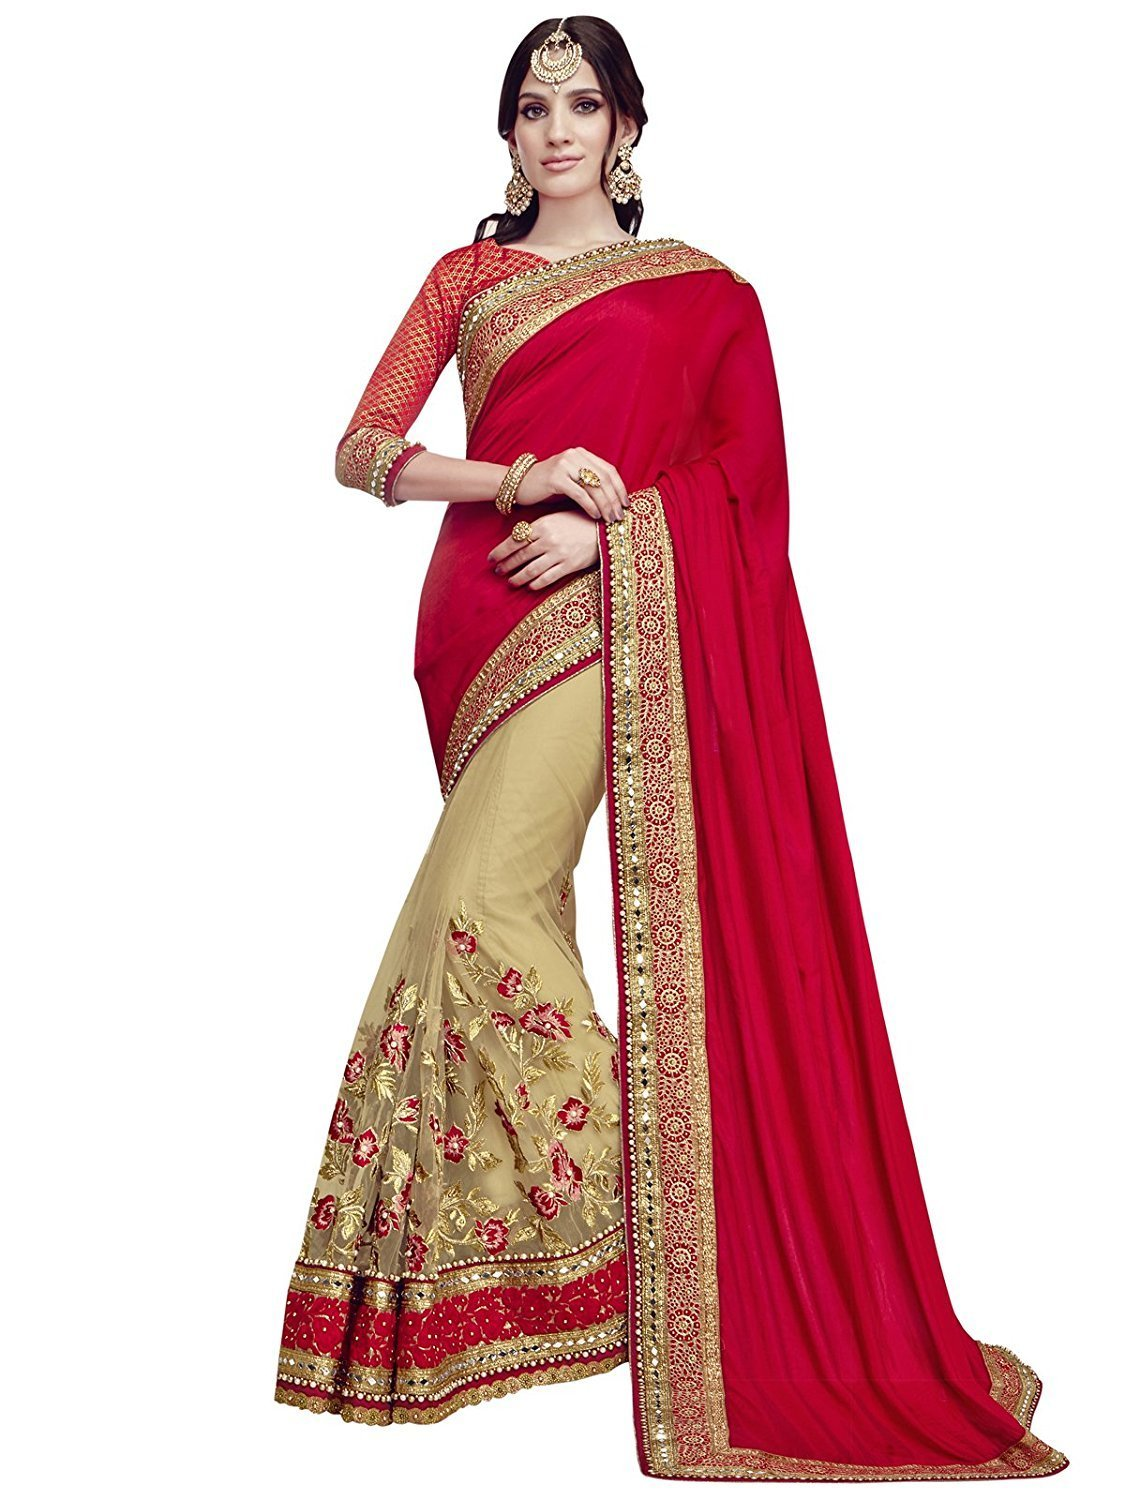 Magneitta Women's Ethnic Wedding And Party Wear Heavy Hand Work Bridal Wear Free Size Red